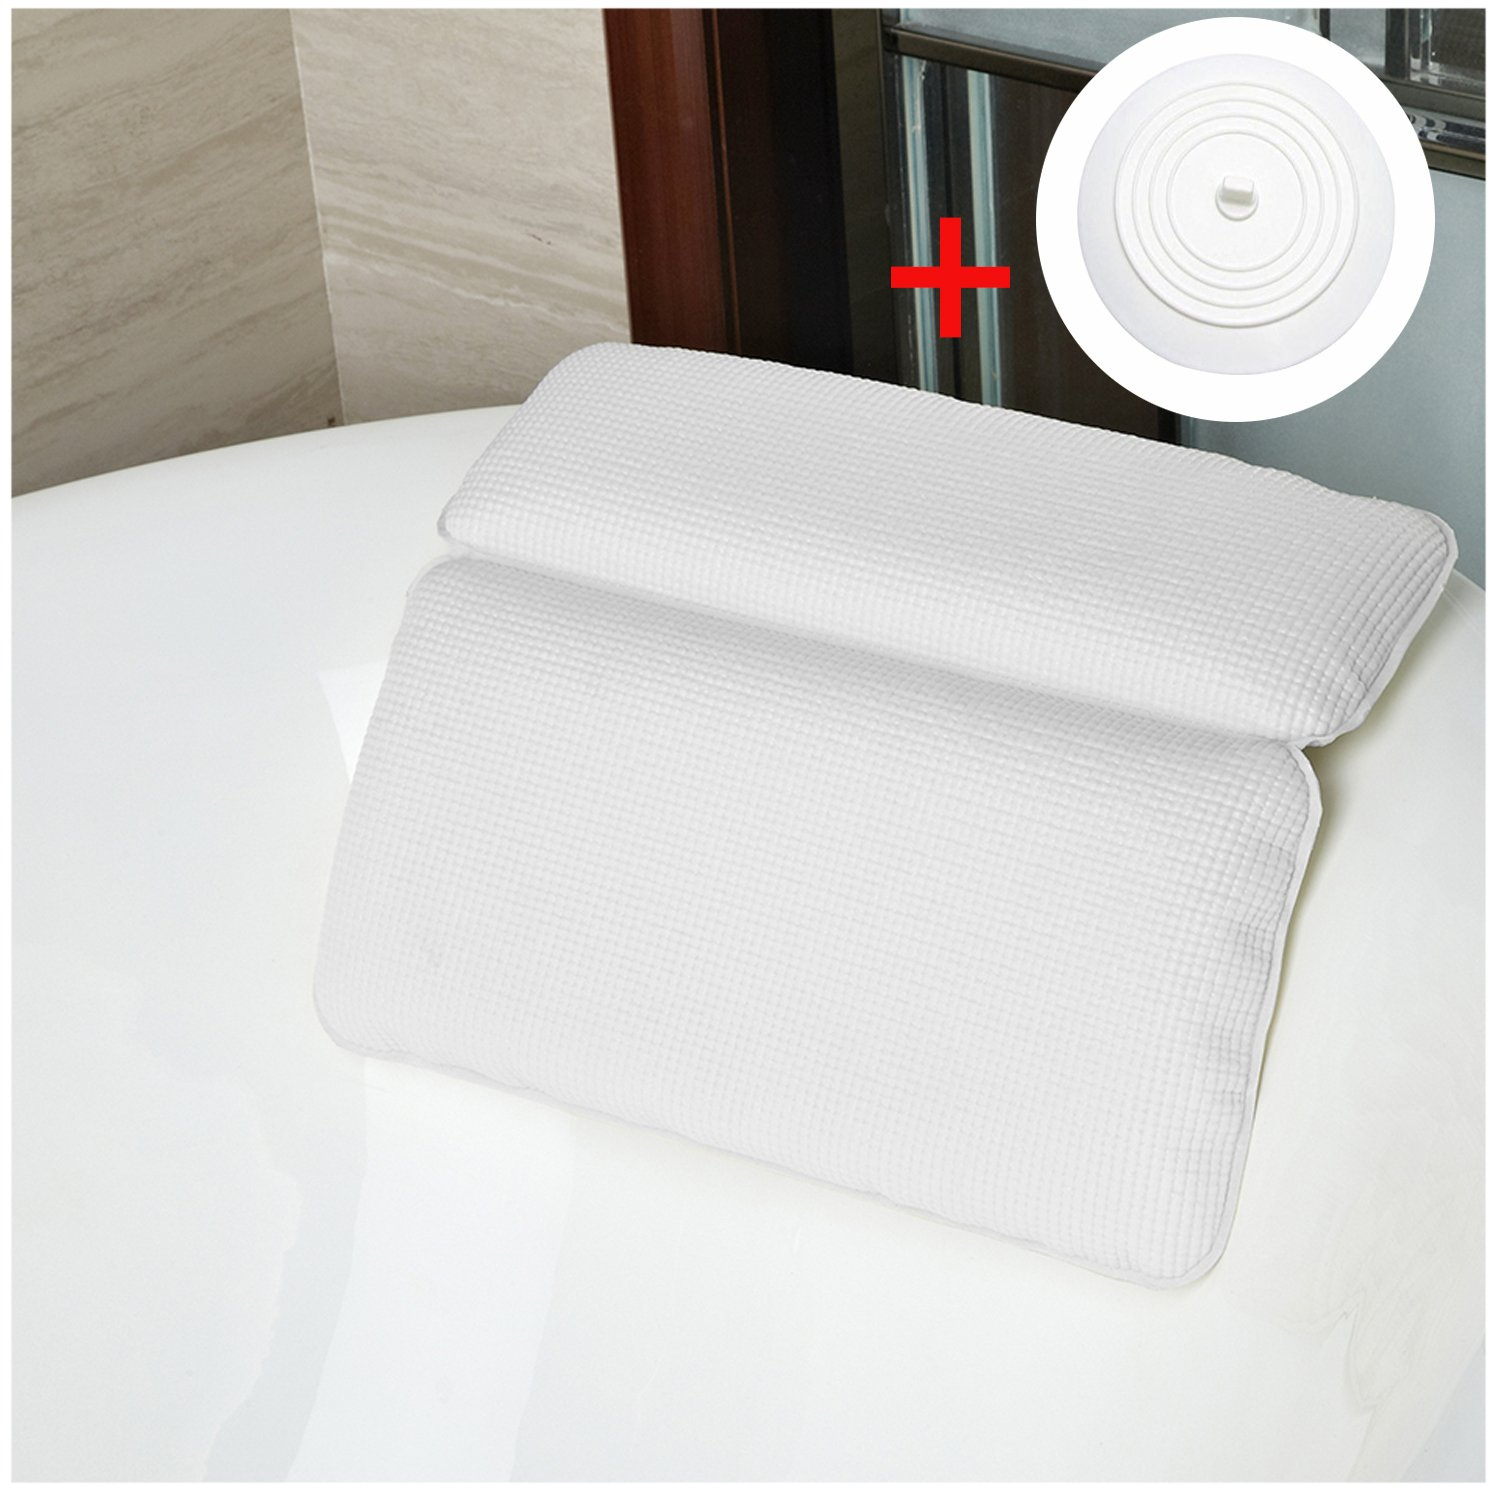 Bath Pillow, Kapmore Non Slip Bathtub Pillow Home Spa Bath Pillow with A Silicone Tub Stopper-Comfort Neck Rest Back Support Bathtub